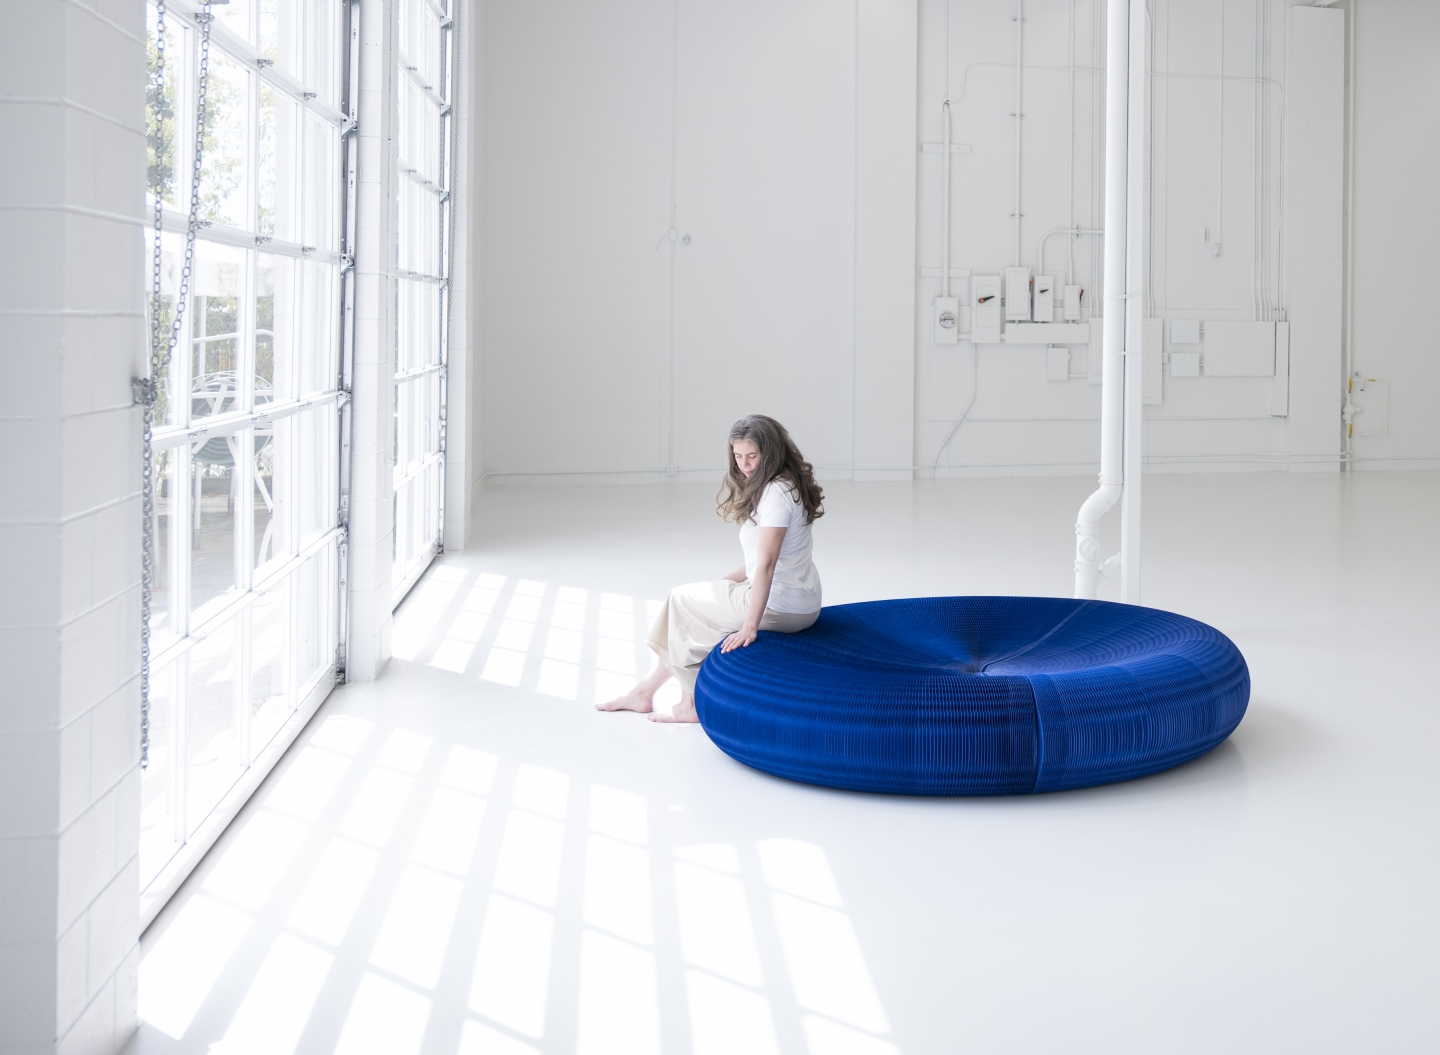 A woman sits on a blue paper softseating lounger.